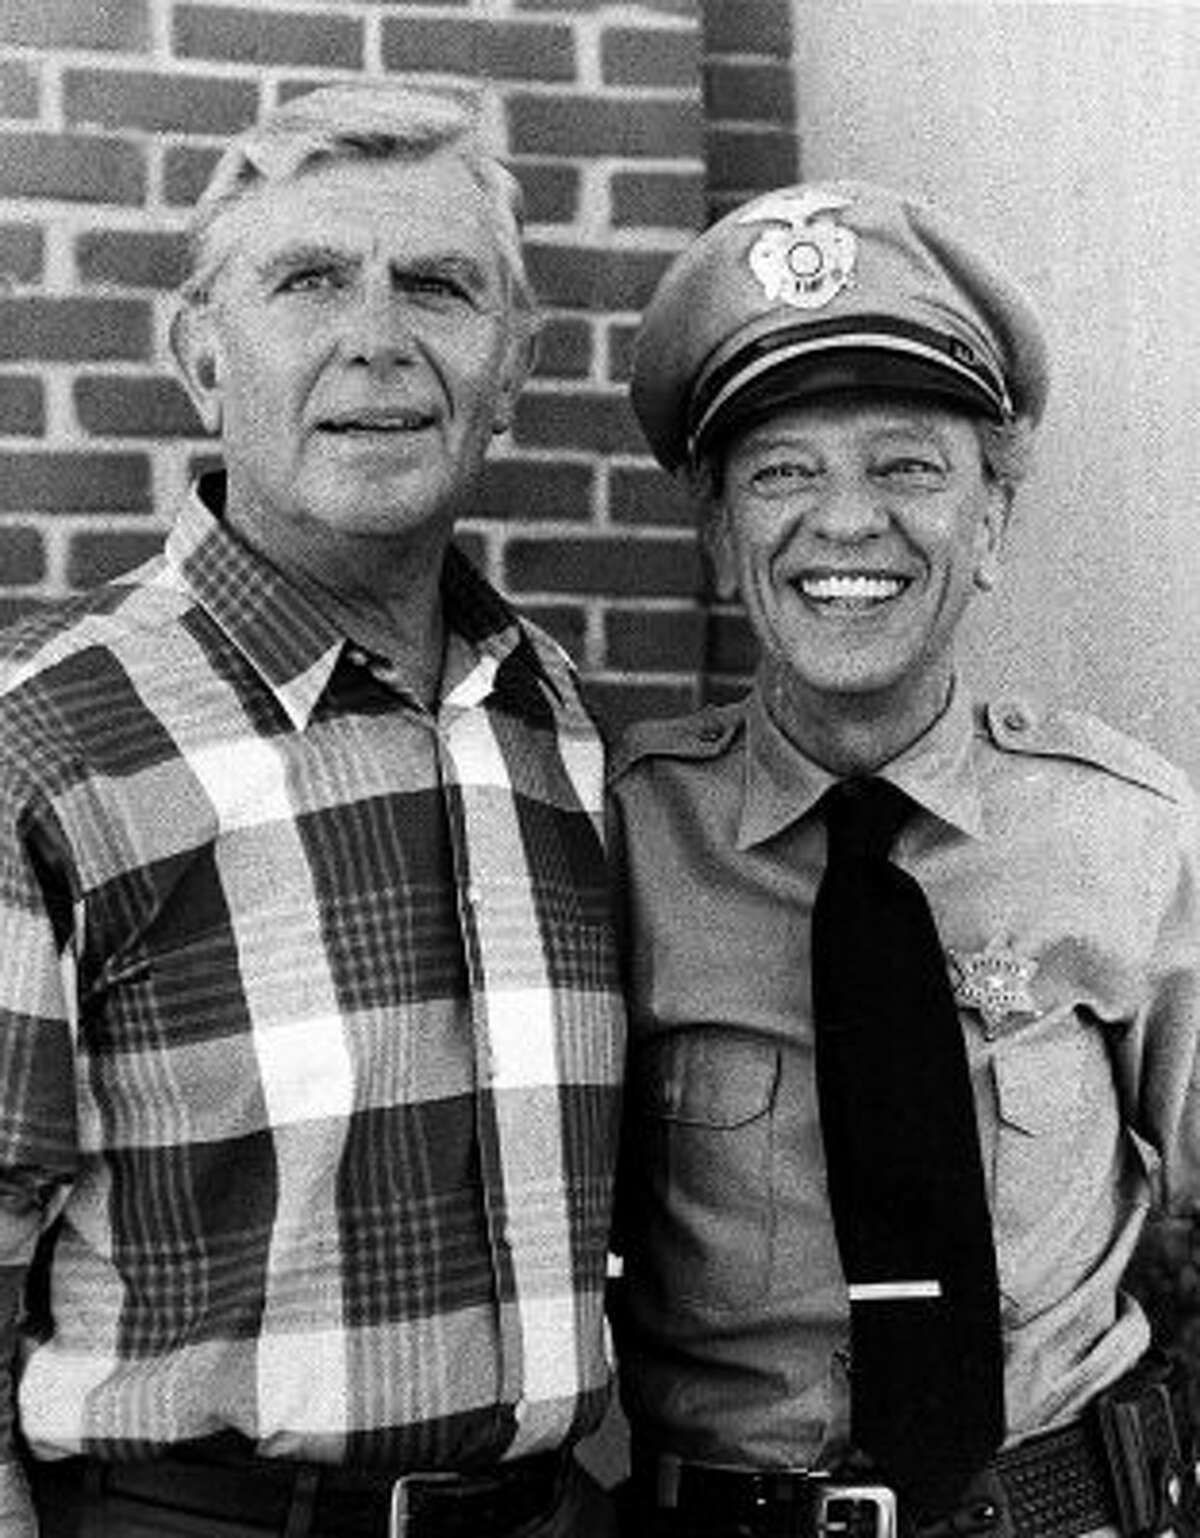 **ADVANCE FOR THURSDAY, NOV. 24 -- FILE** Andy Griffith and Don Knotts posing in a 1986 photo. Both actors starred in